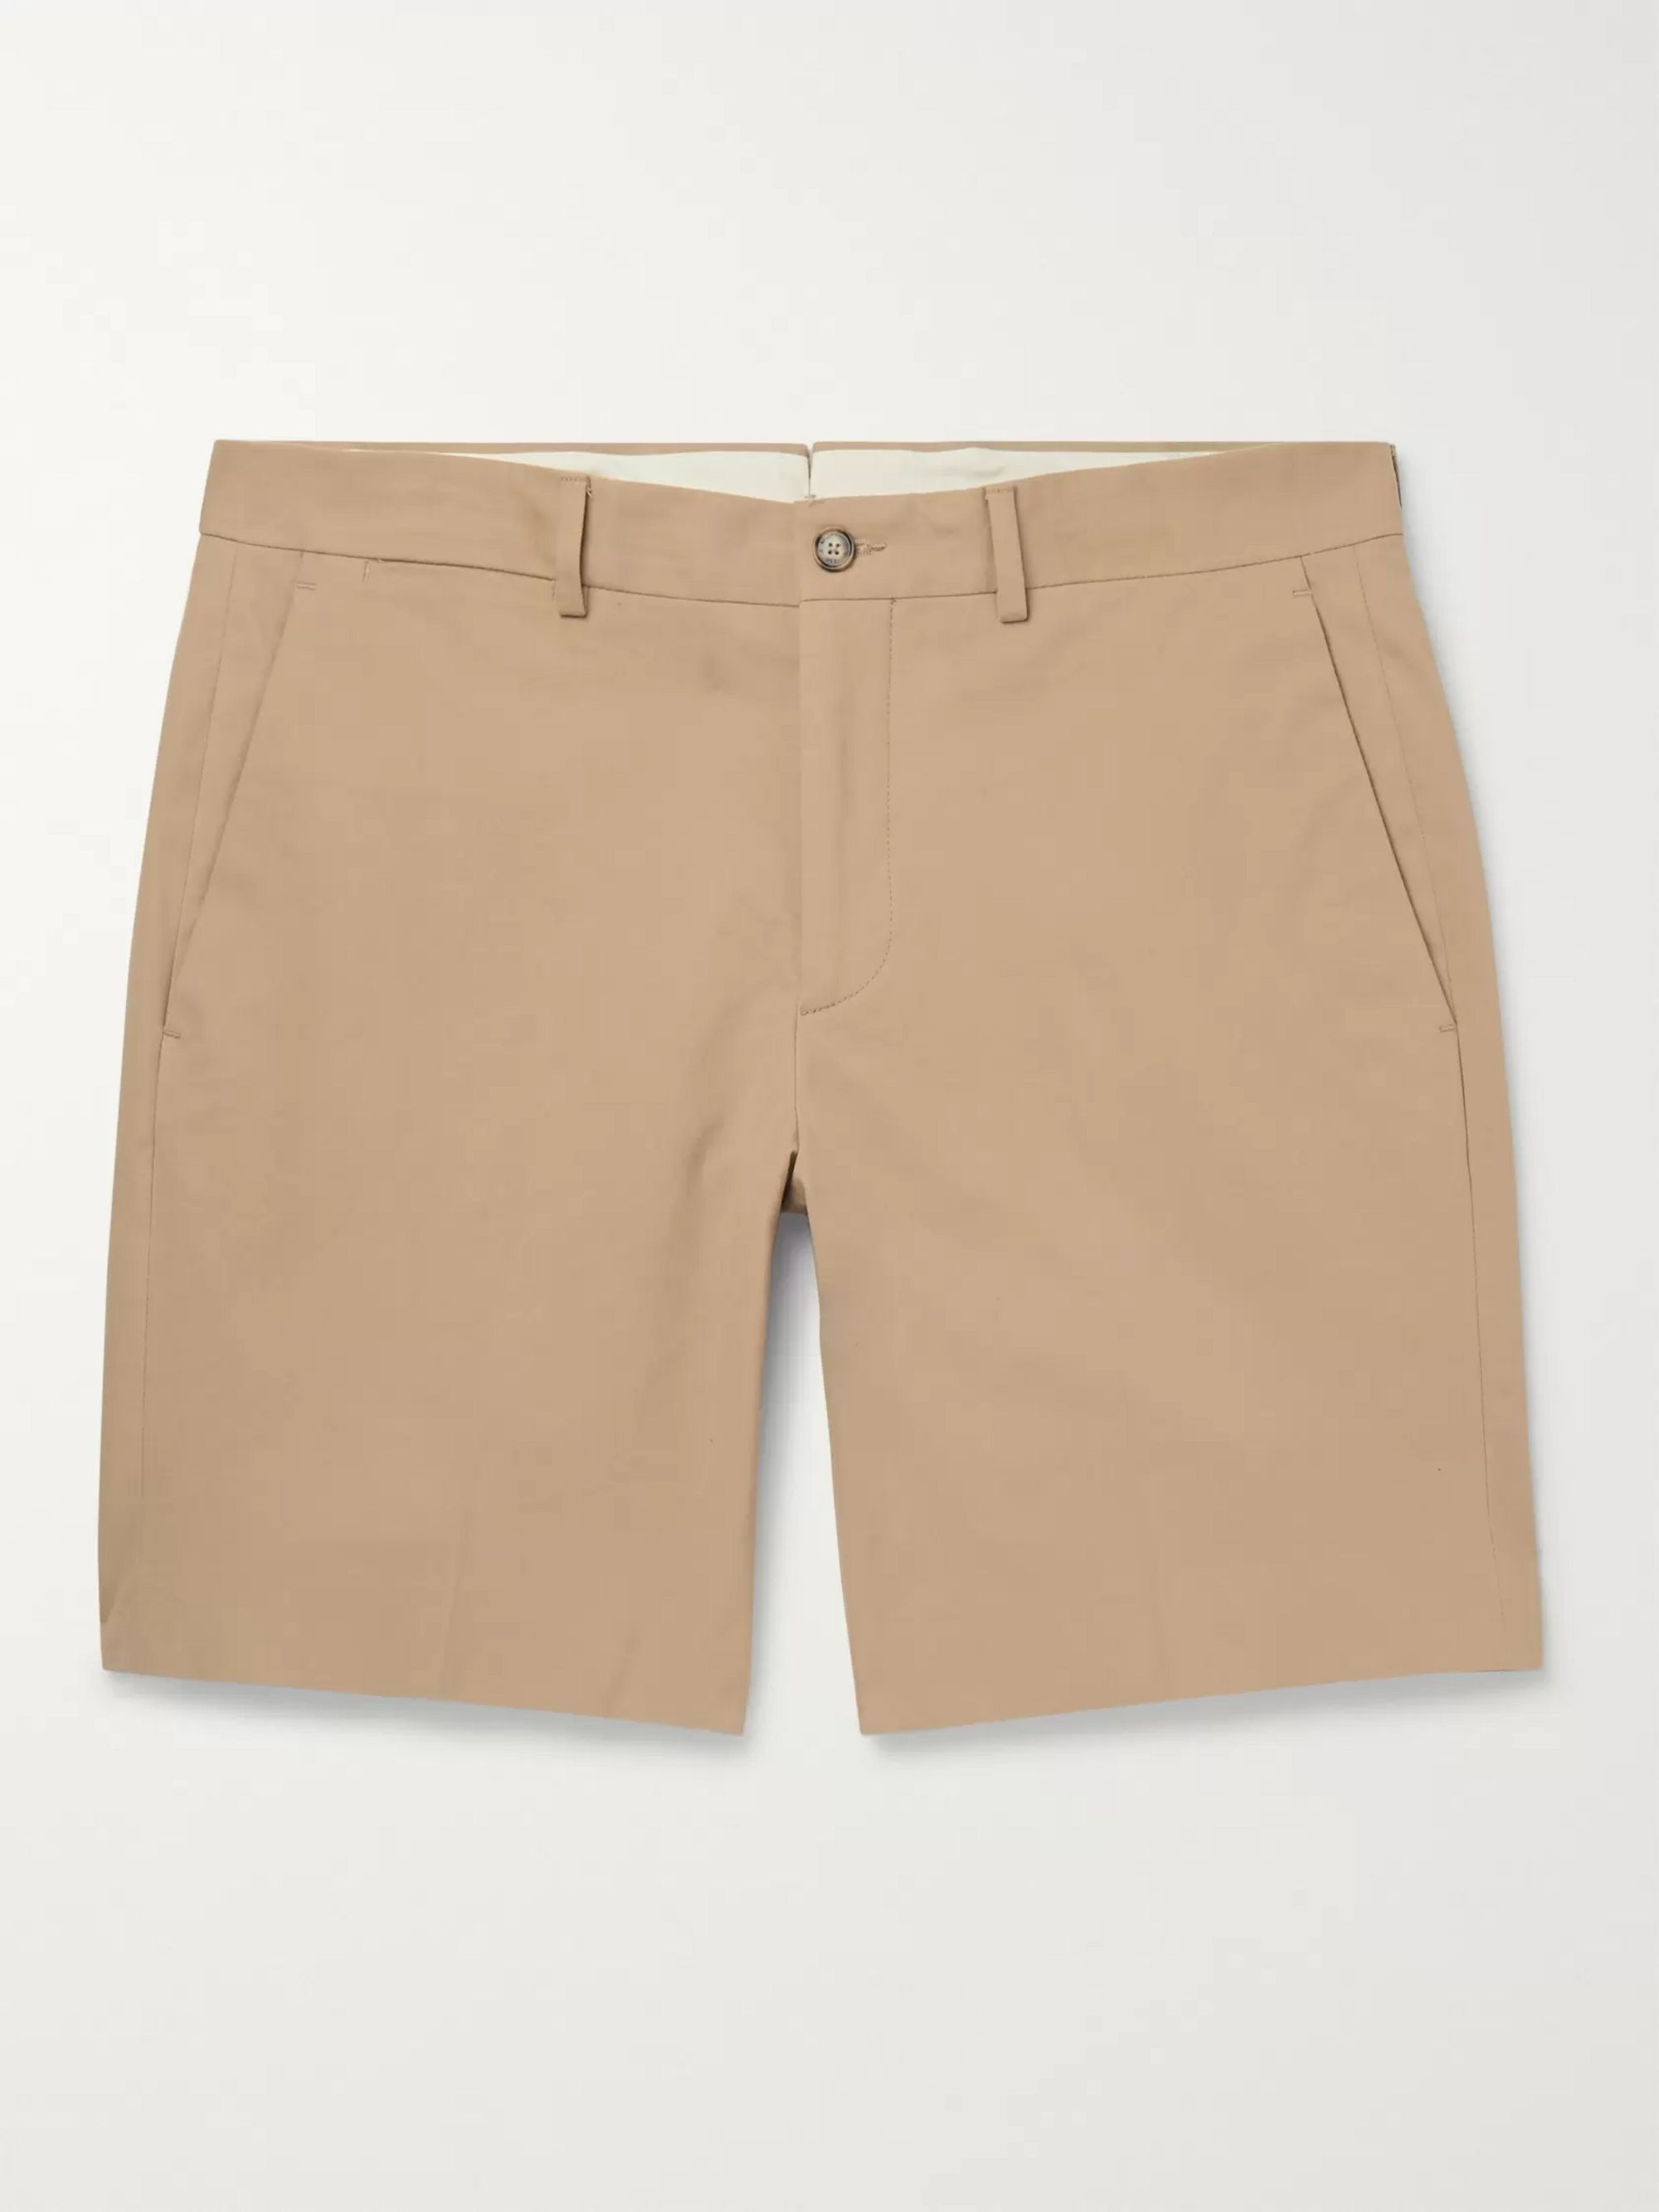 Ralph Lauren Purple Label Knightsbridge Slim-Fit Stretch-Cotton Twill Shorts